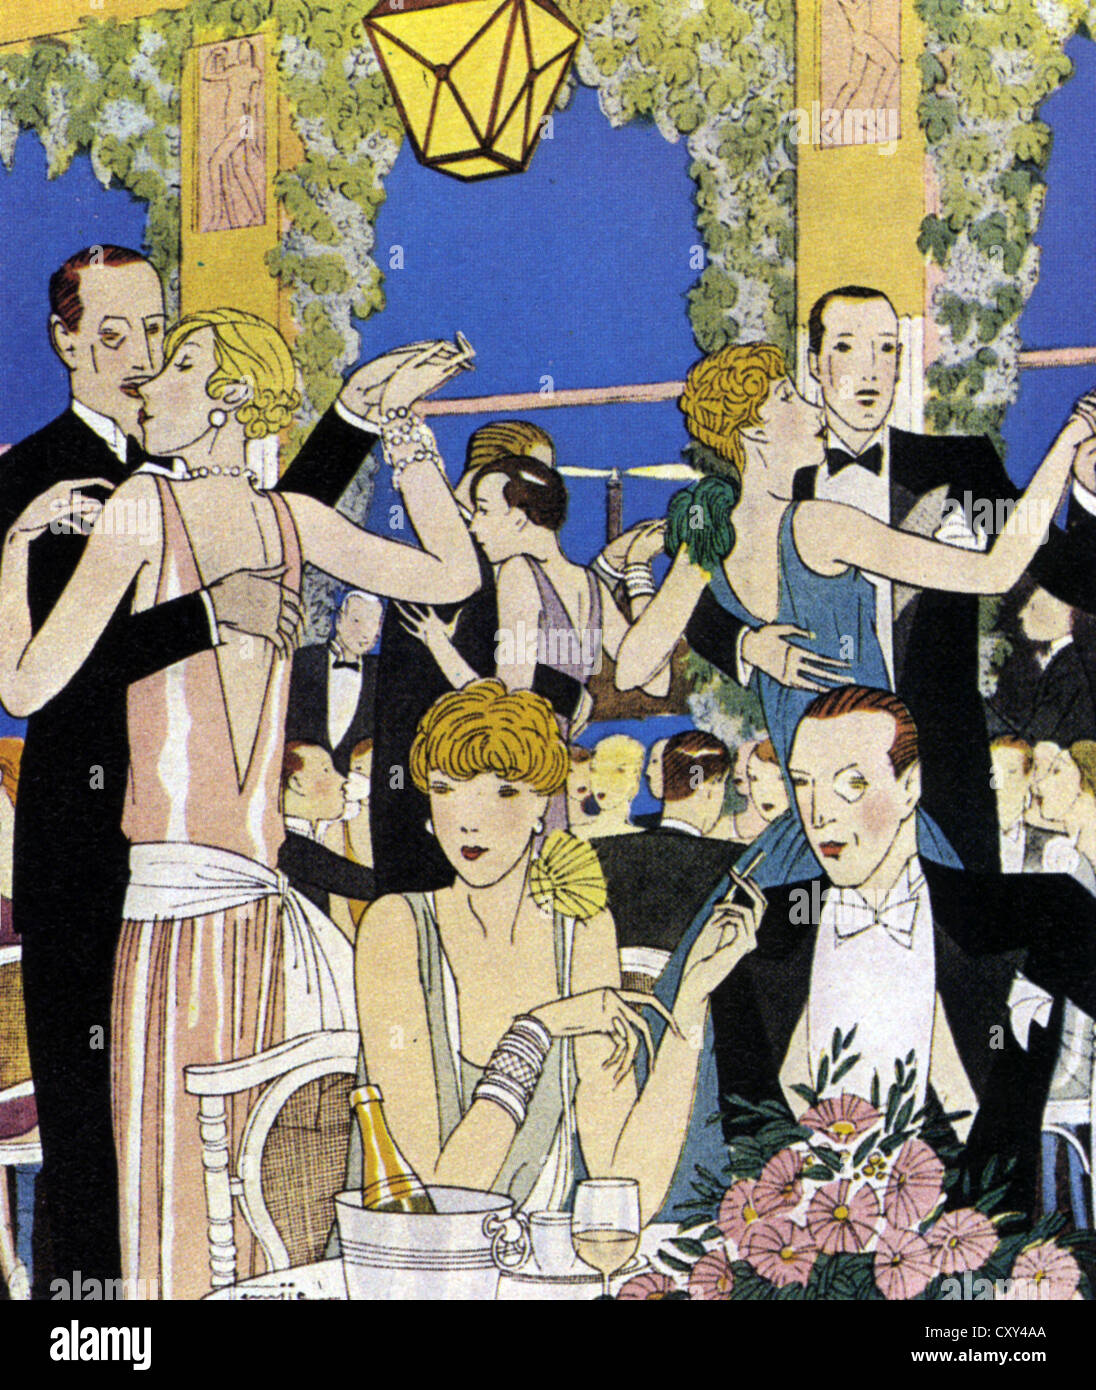 HIGH SOCIETY   from the French magazine 'Biarritz' in 1929 - Stock Image